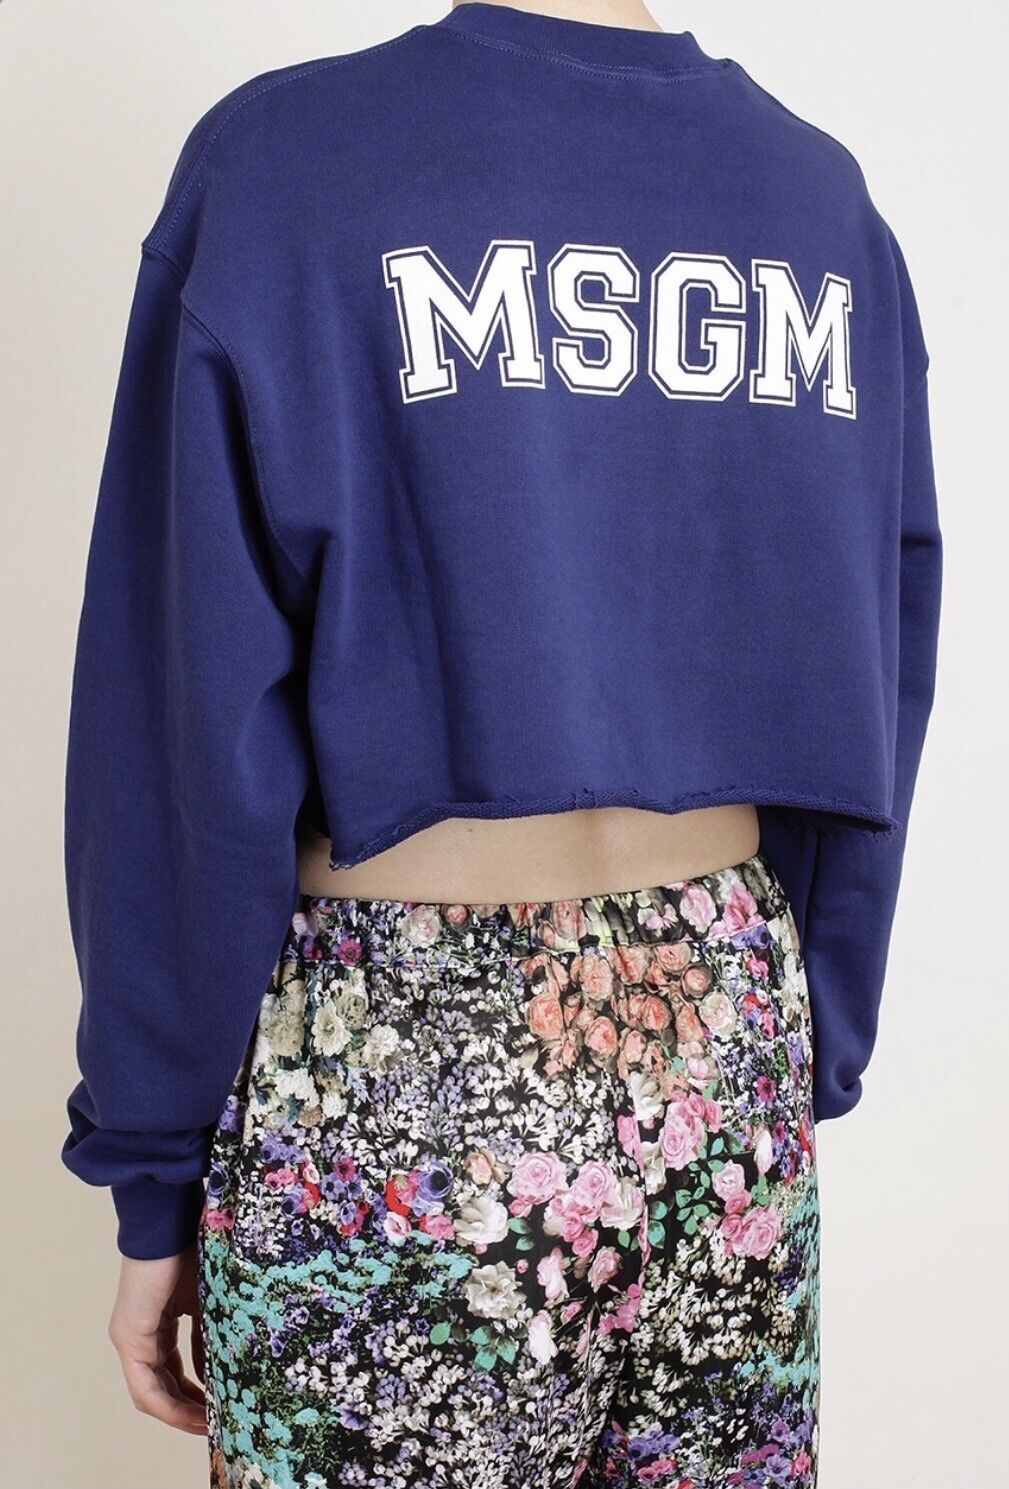 MSGM 1993 Modif Logo Navy bluee Cropped Sweatshirt XS